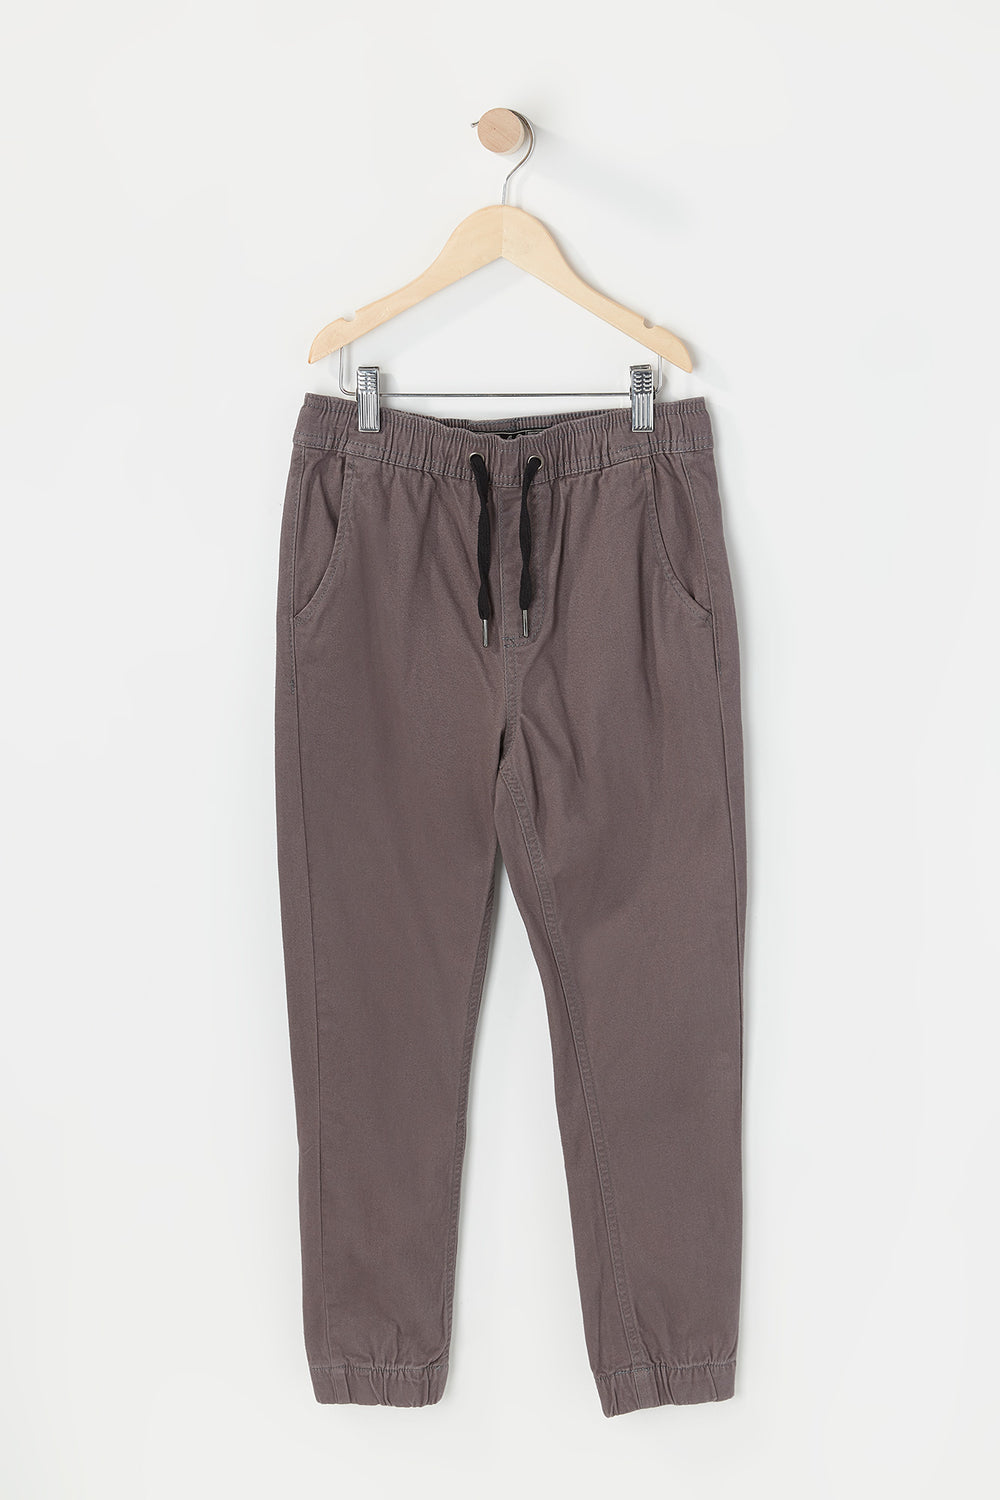 West49 Youth Jogger Heather Grey